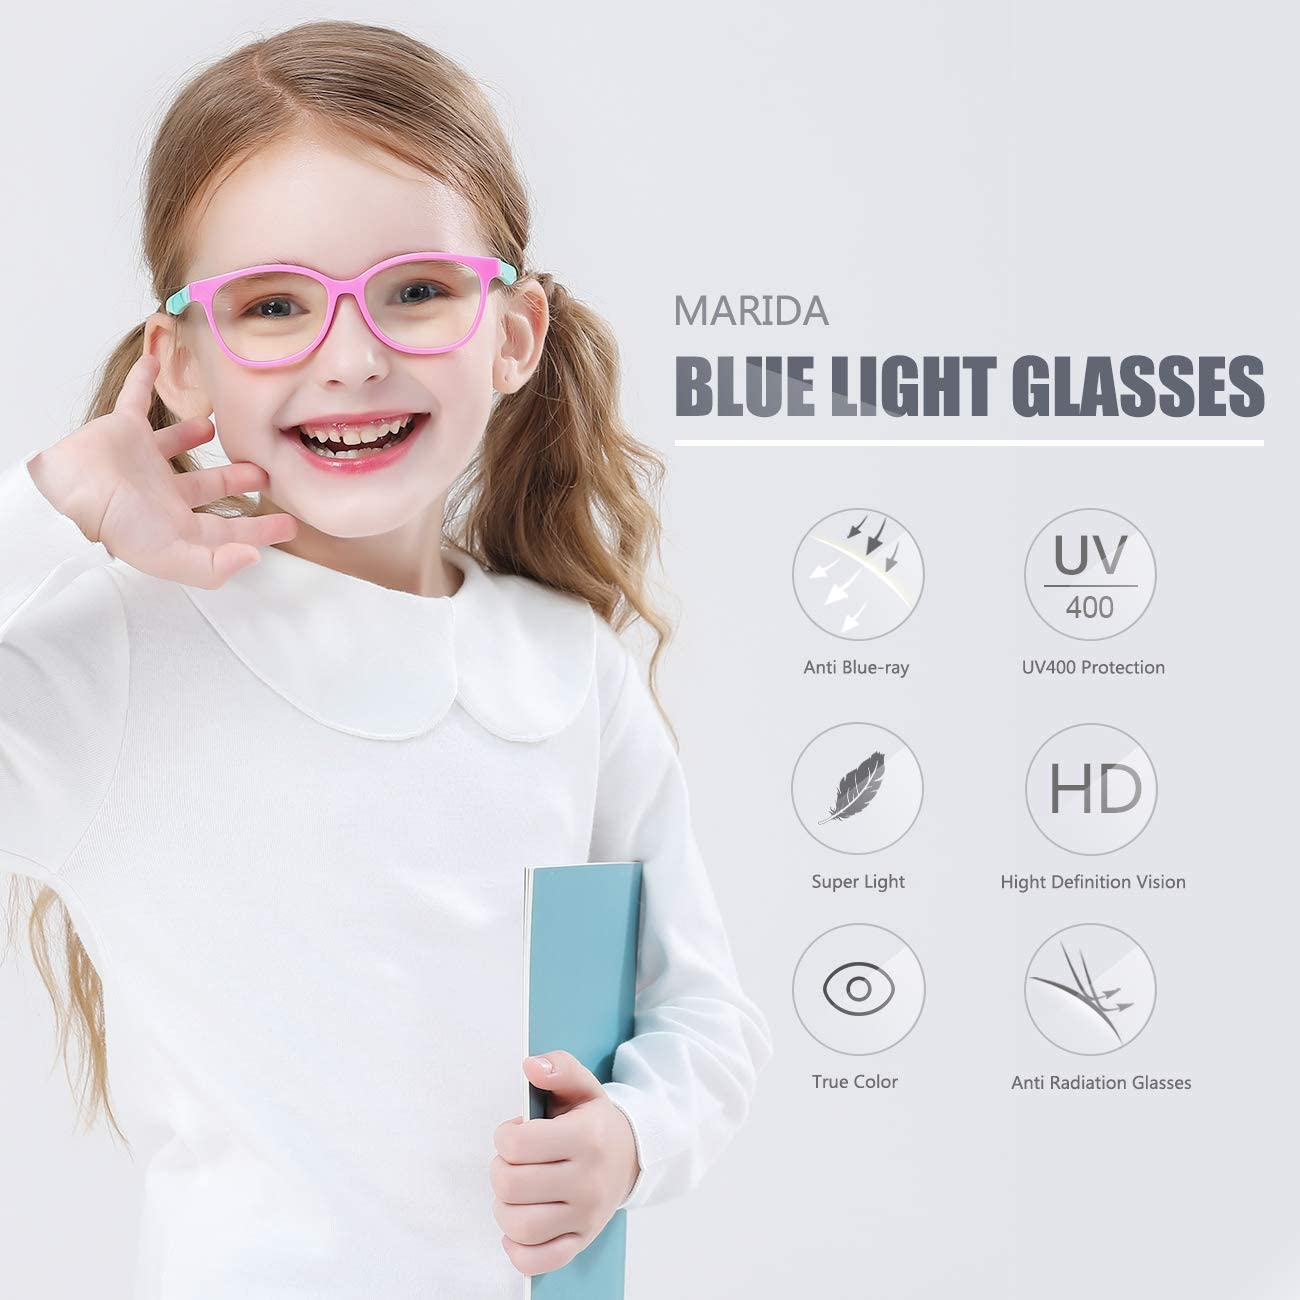 Smartphone Screens Boys Girls Age 3-10 Black MARIDA Kids Blue Light Blocking Glasses Strap Computer and Gamer Eyewear Anti-Glare Protection Anti-Eyestrain Anti UV Glasses for Computer or Tv